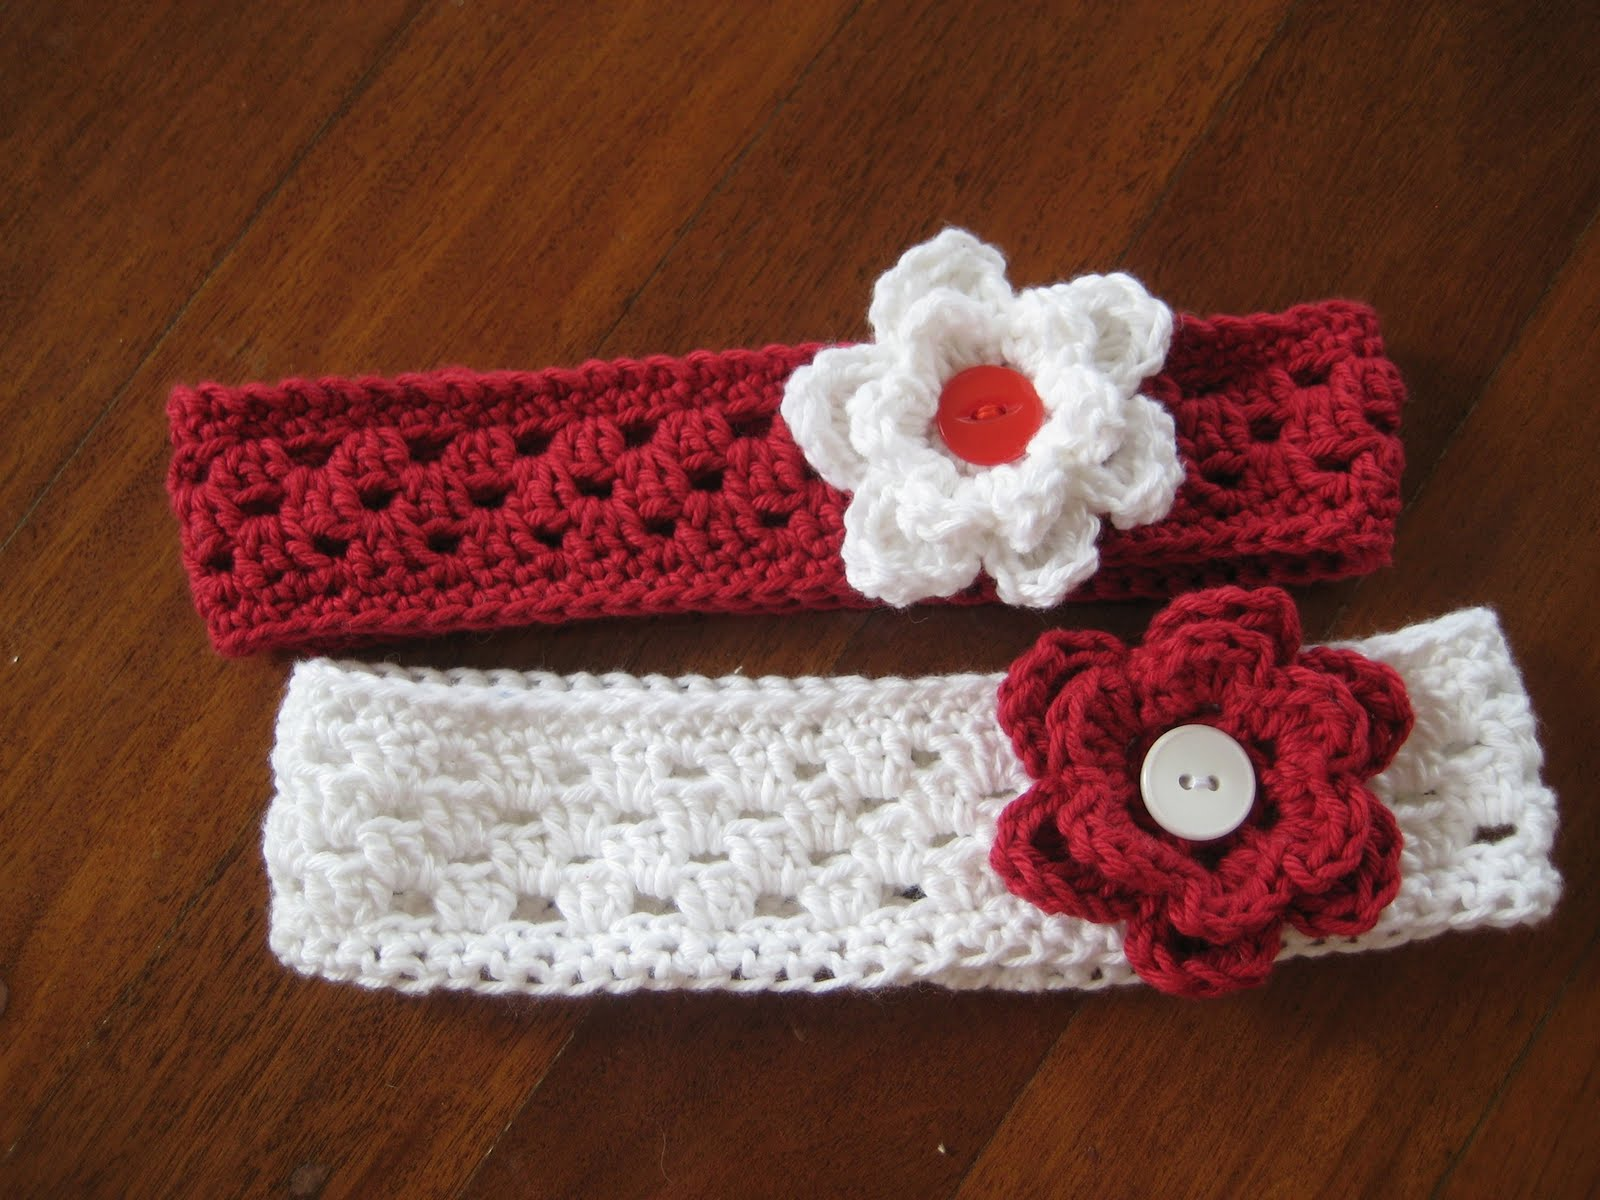 Crochet Gifts : Never Knew: More crochet gifts...